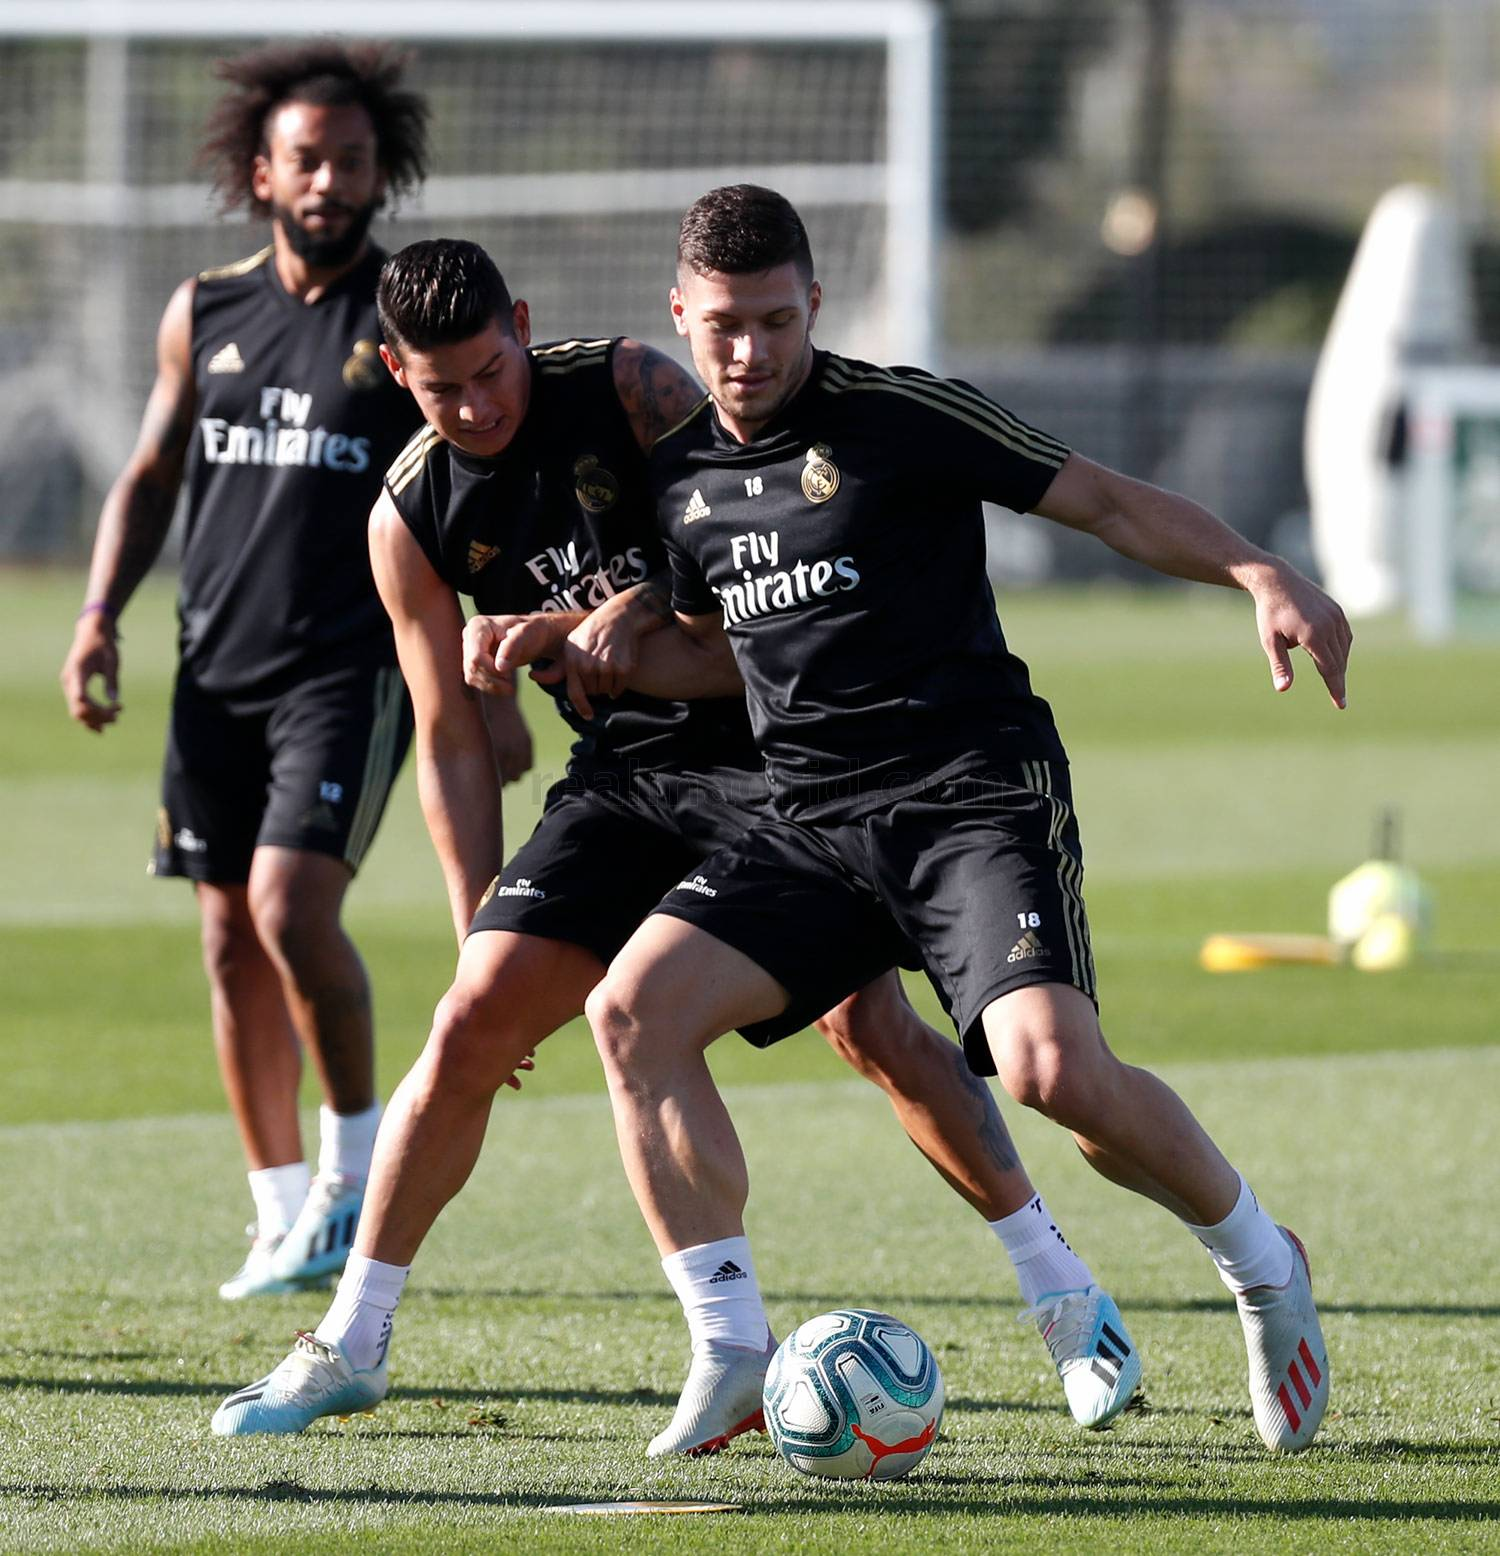 Real Madrid - Entrenamiento del Real Madrid  - 11-09-2019